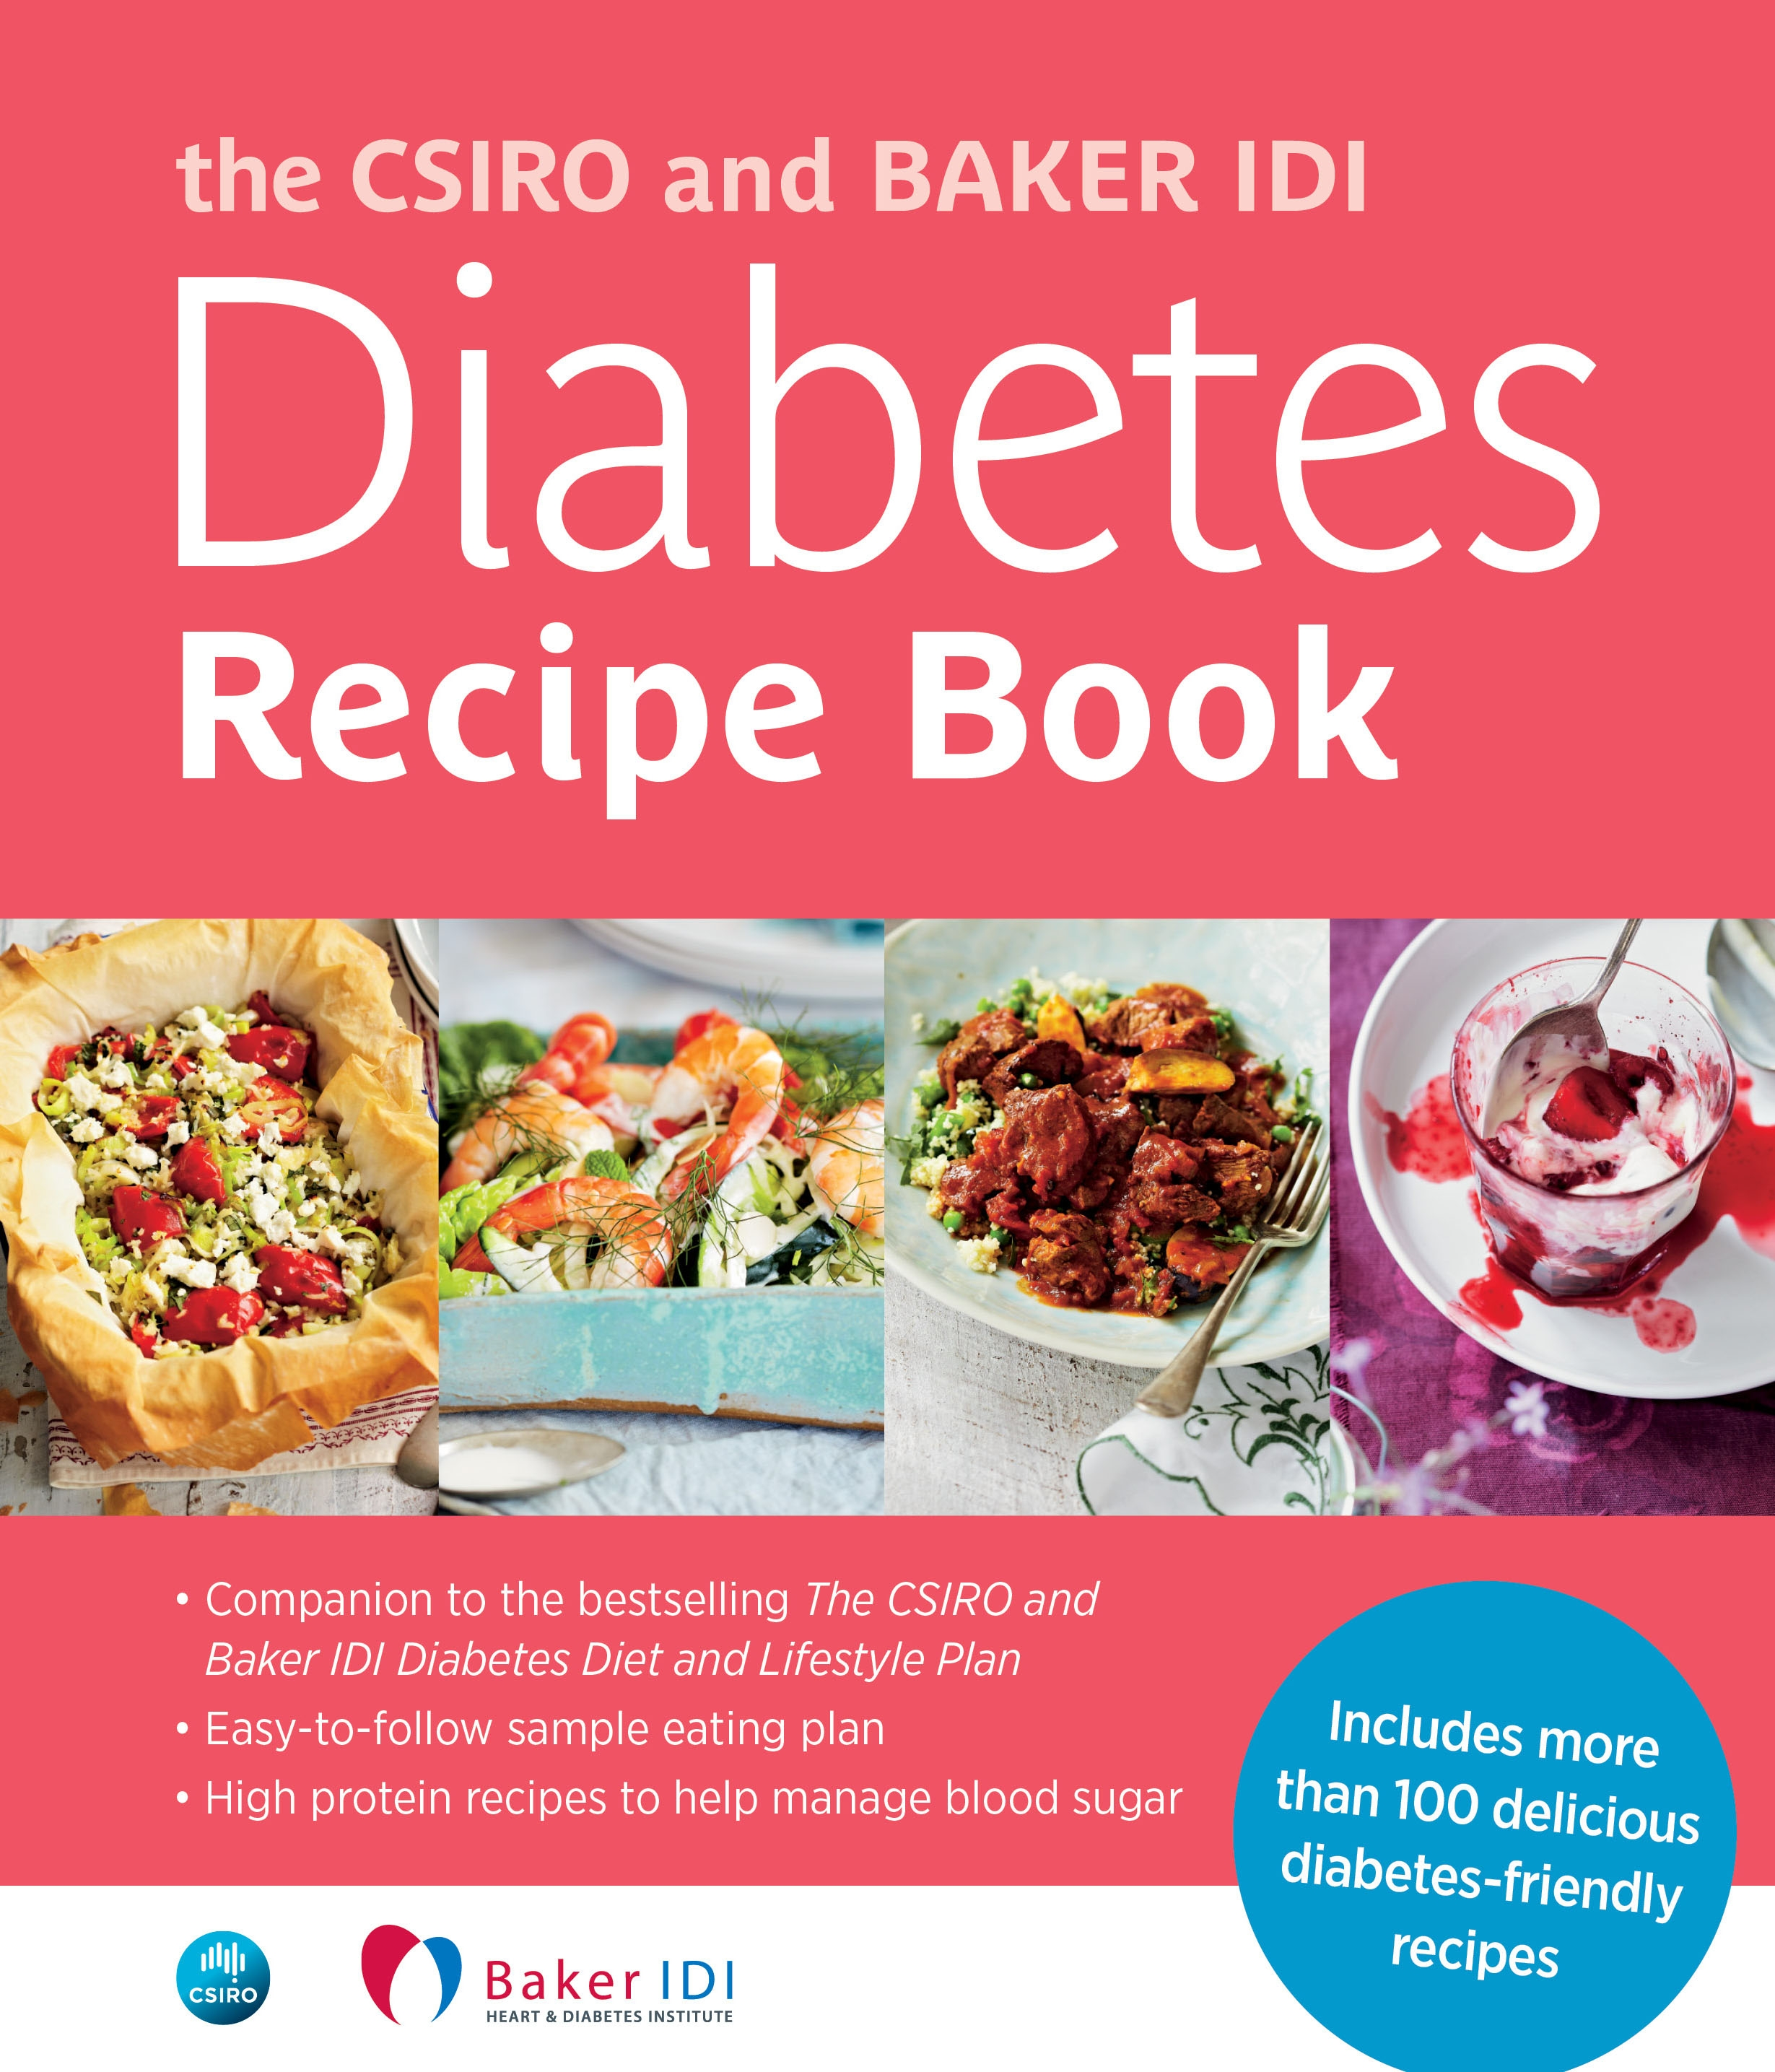 The csiro and baker idi diabetes recipe book penguin books australia the csiro and baker idi diabetes recipe book food drink forumfinder Choice Image